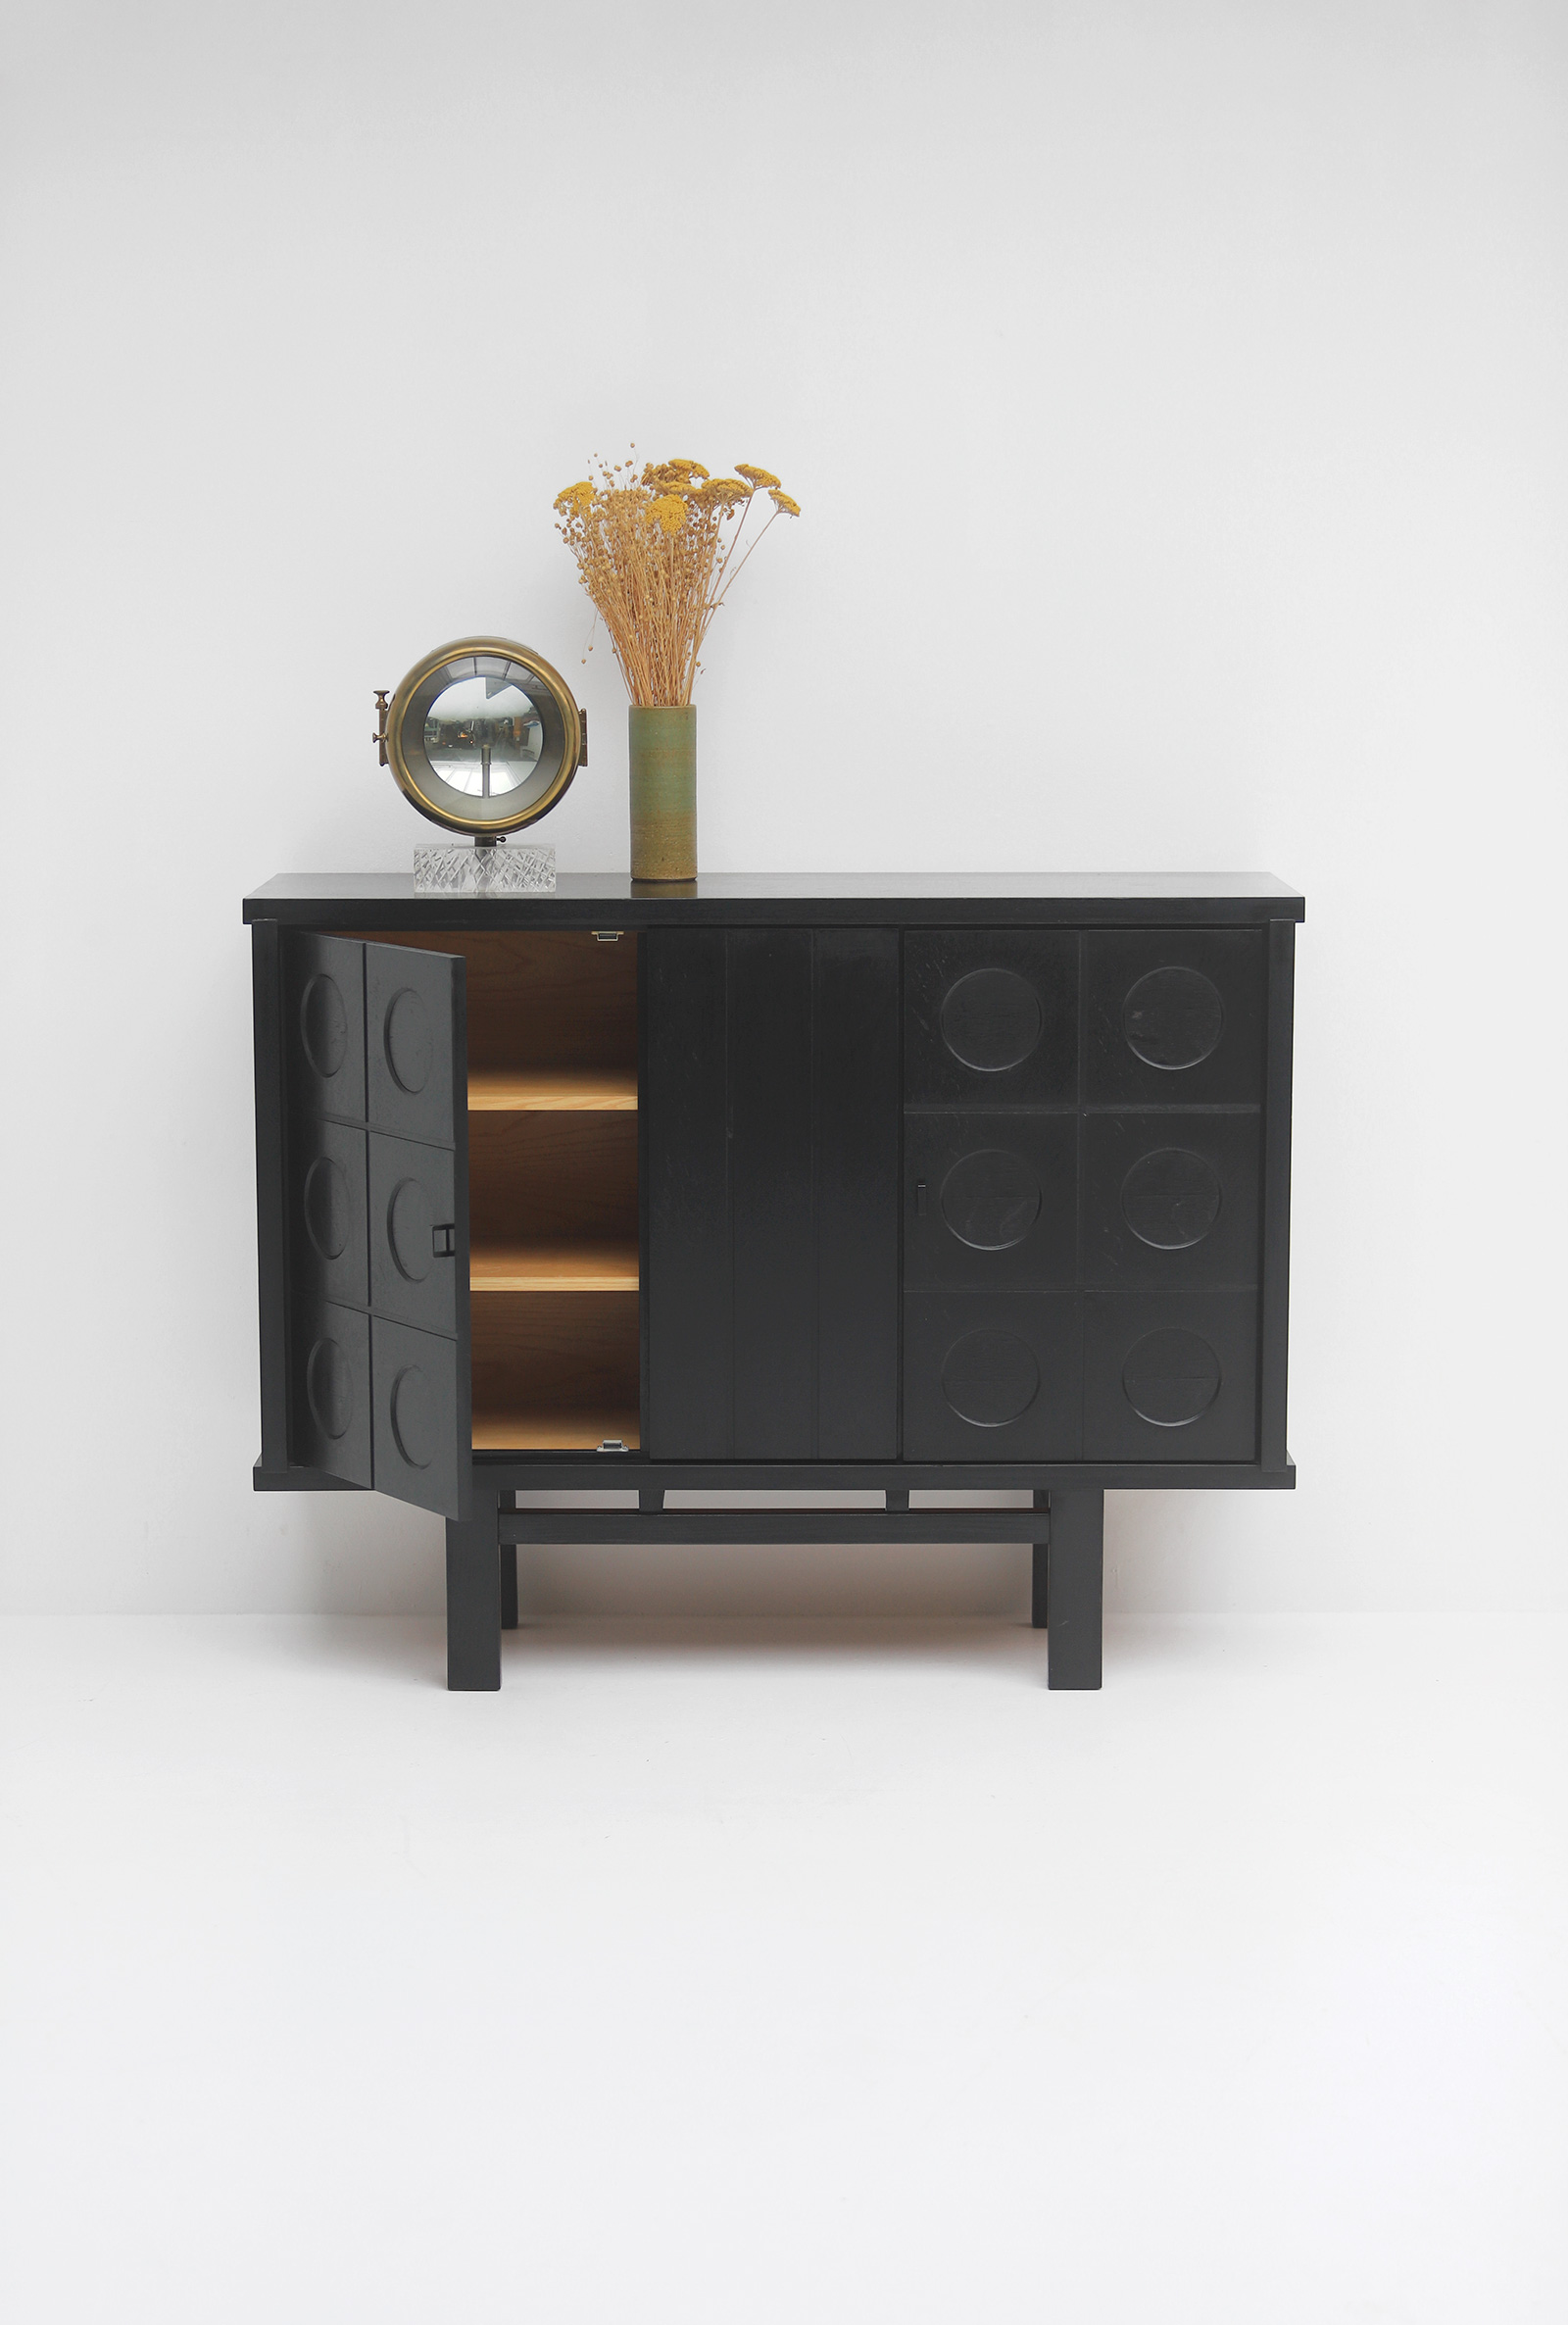 Decorative Black Cabinet with Patterned doors image 2